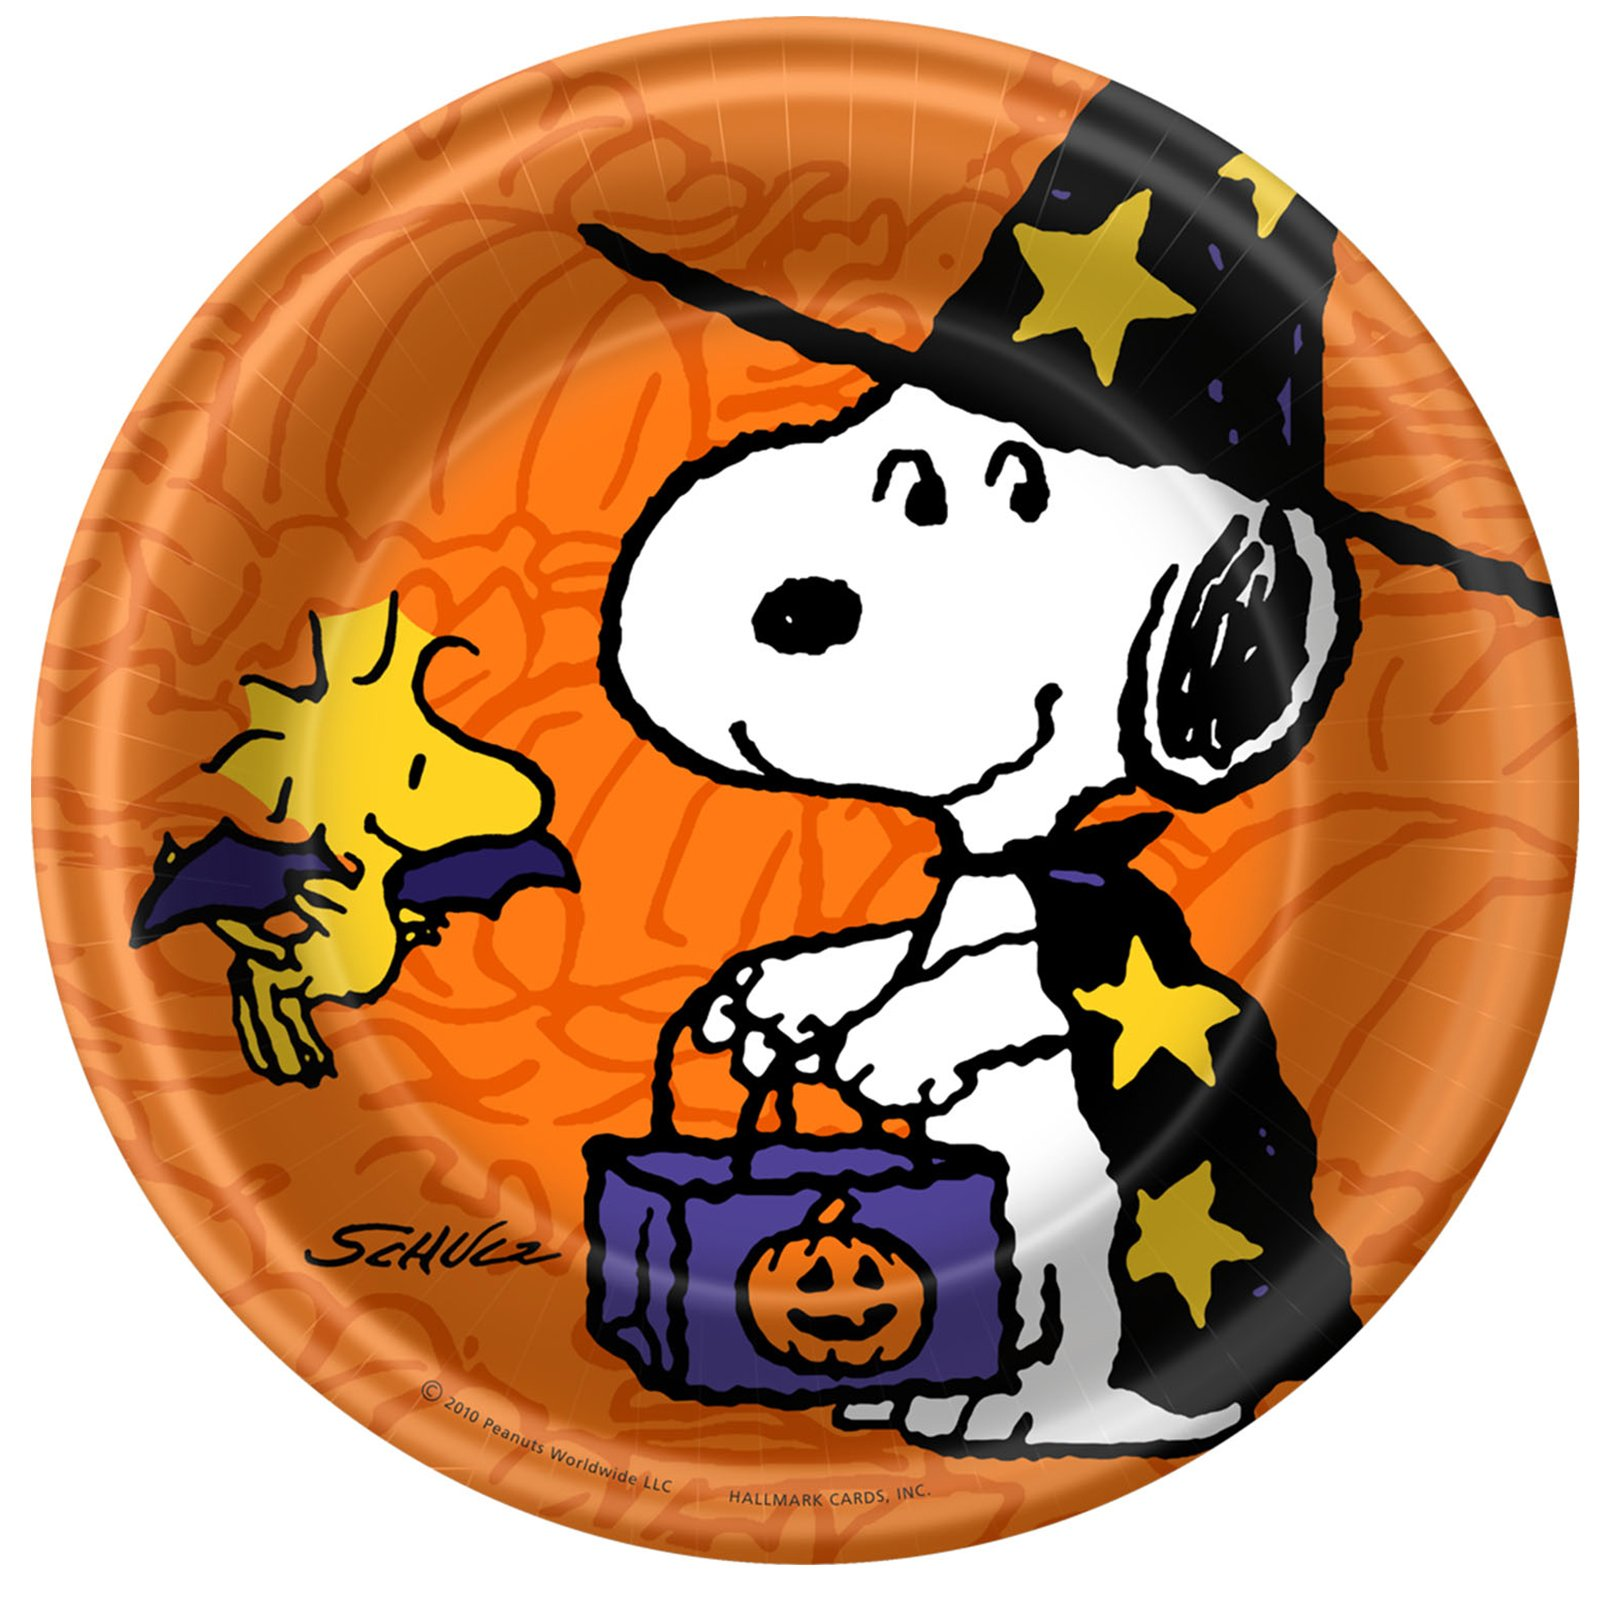 Charlie Brown Characters Clipart at GetDrawings | Free ... (1600 x 1600 Pixel)